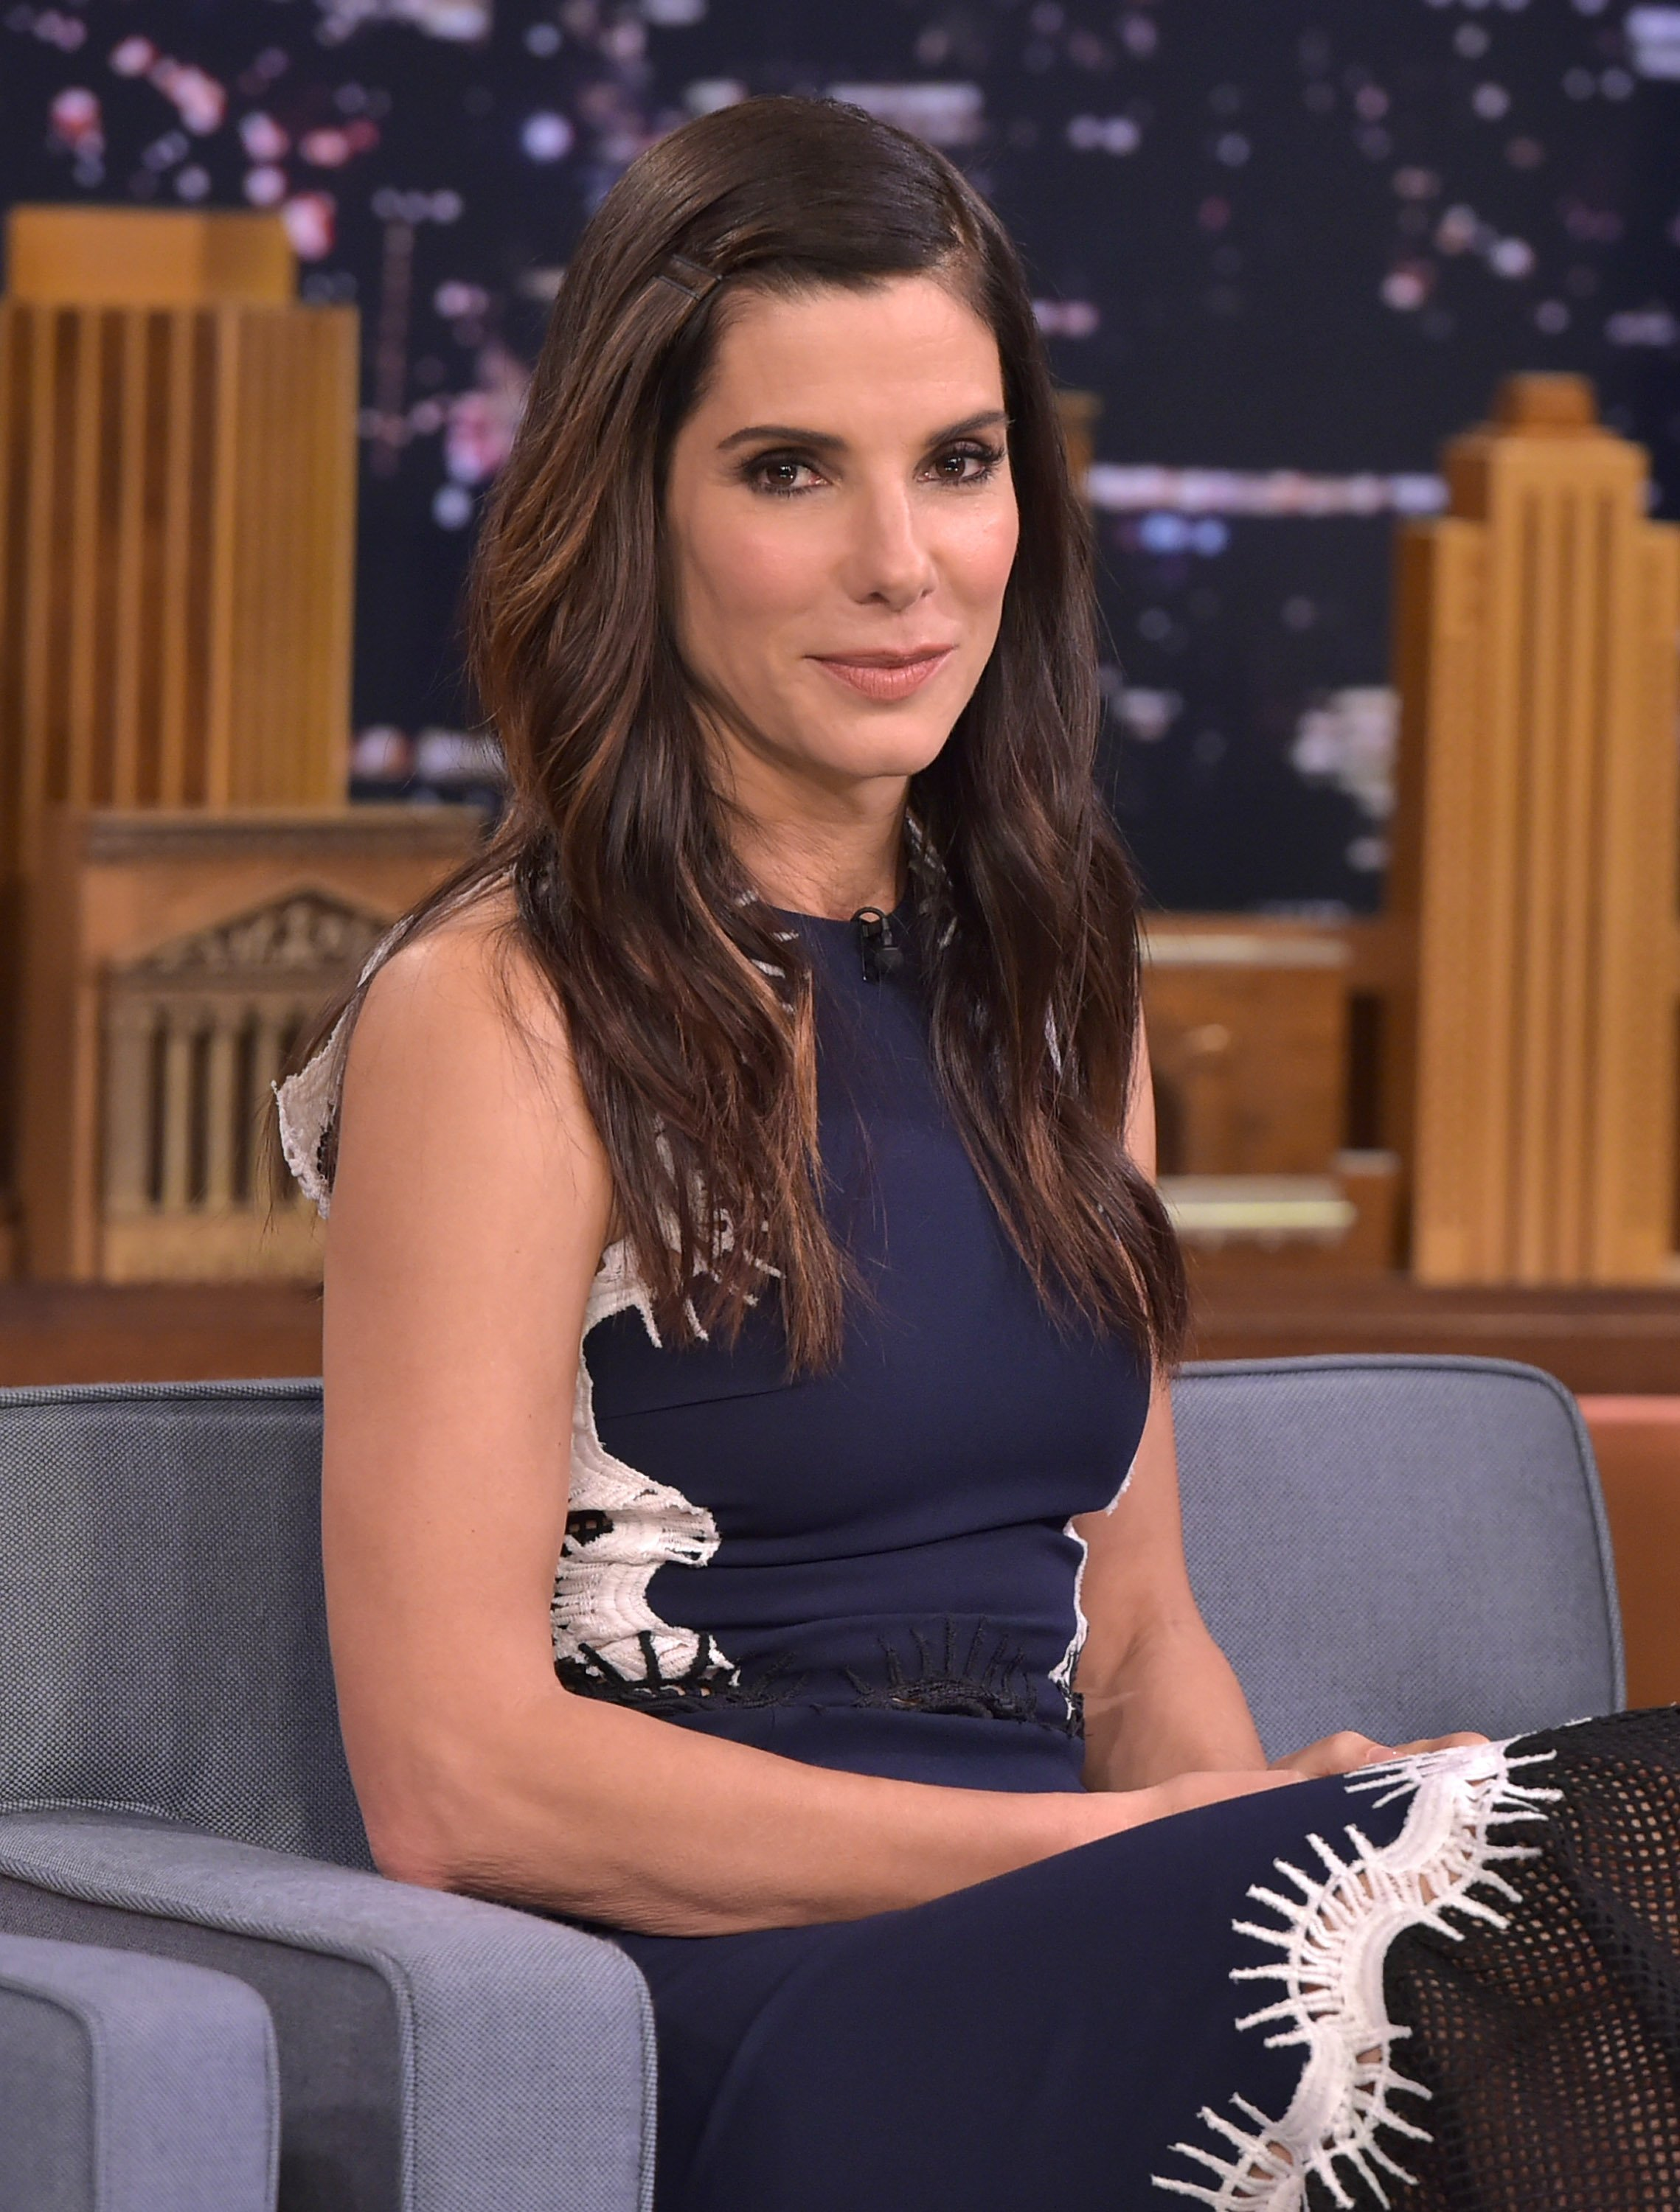 """Sandra Bullock Visits """"The Tonight Show Starring Jimmy Fallon"""" at Rockefeller Center on October 28, 2015, in New York City. 